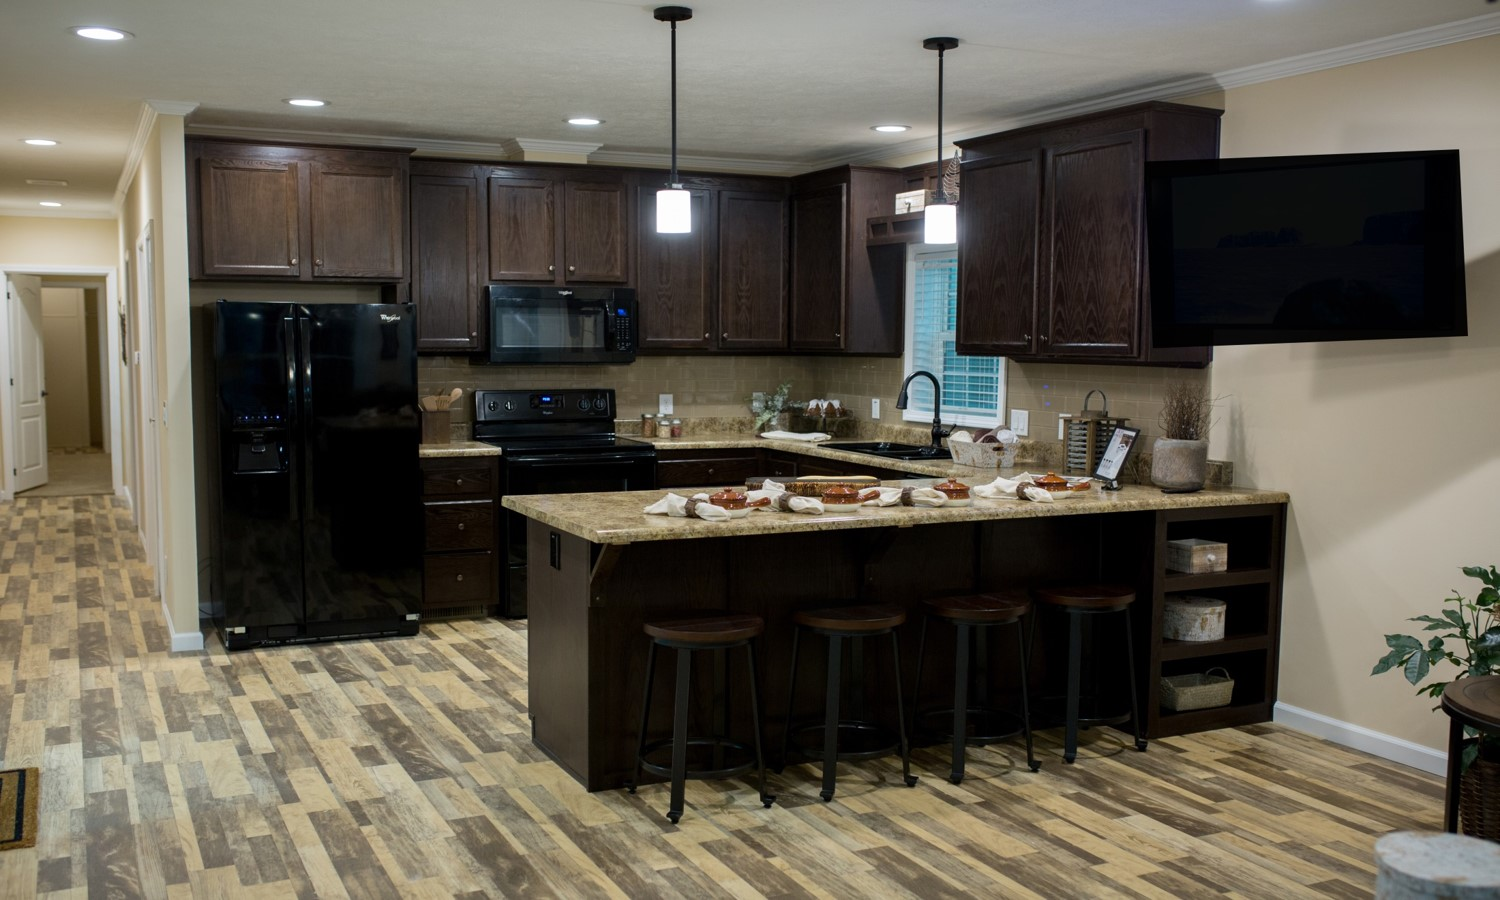 2018 New Manufactured Home Designs   MHI   Manufactured ... Clayton Home Designs on home furniture, home blueprints, home plan, home decor, home building, home symbol, home style, home wallpaper, home exteriors, home front, home ideas, home interior, home tiny house, home row, home layout, home painting, home color schemes, home drawing, home builders, home renovation,